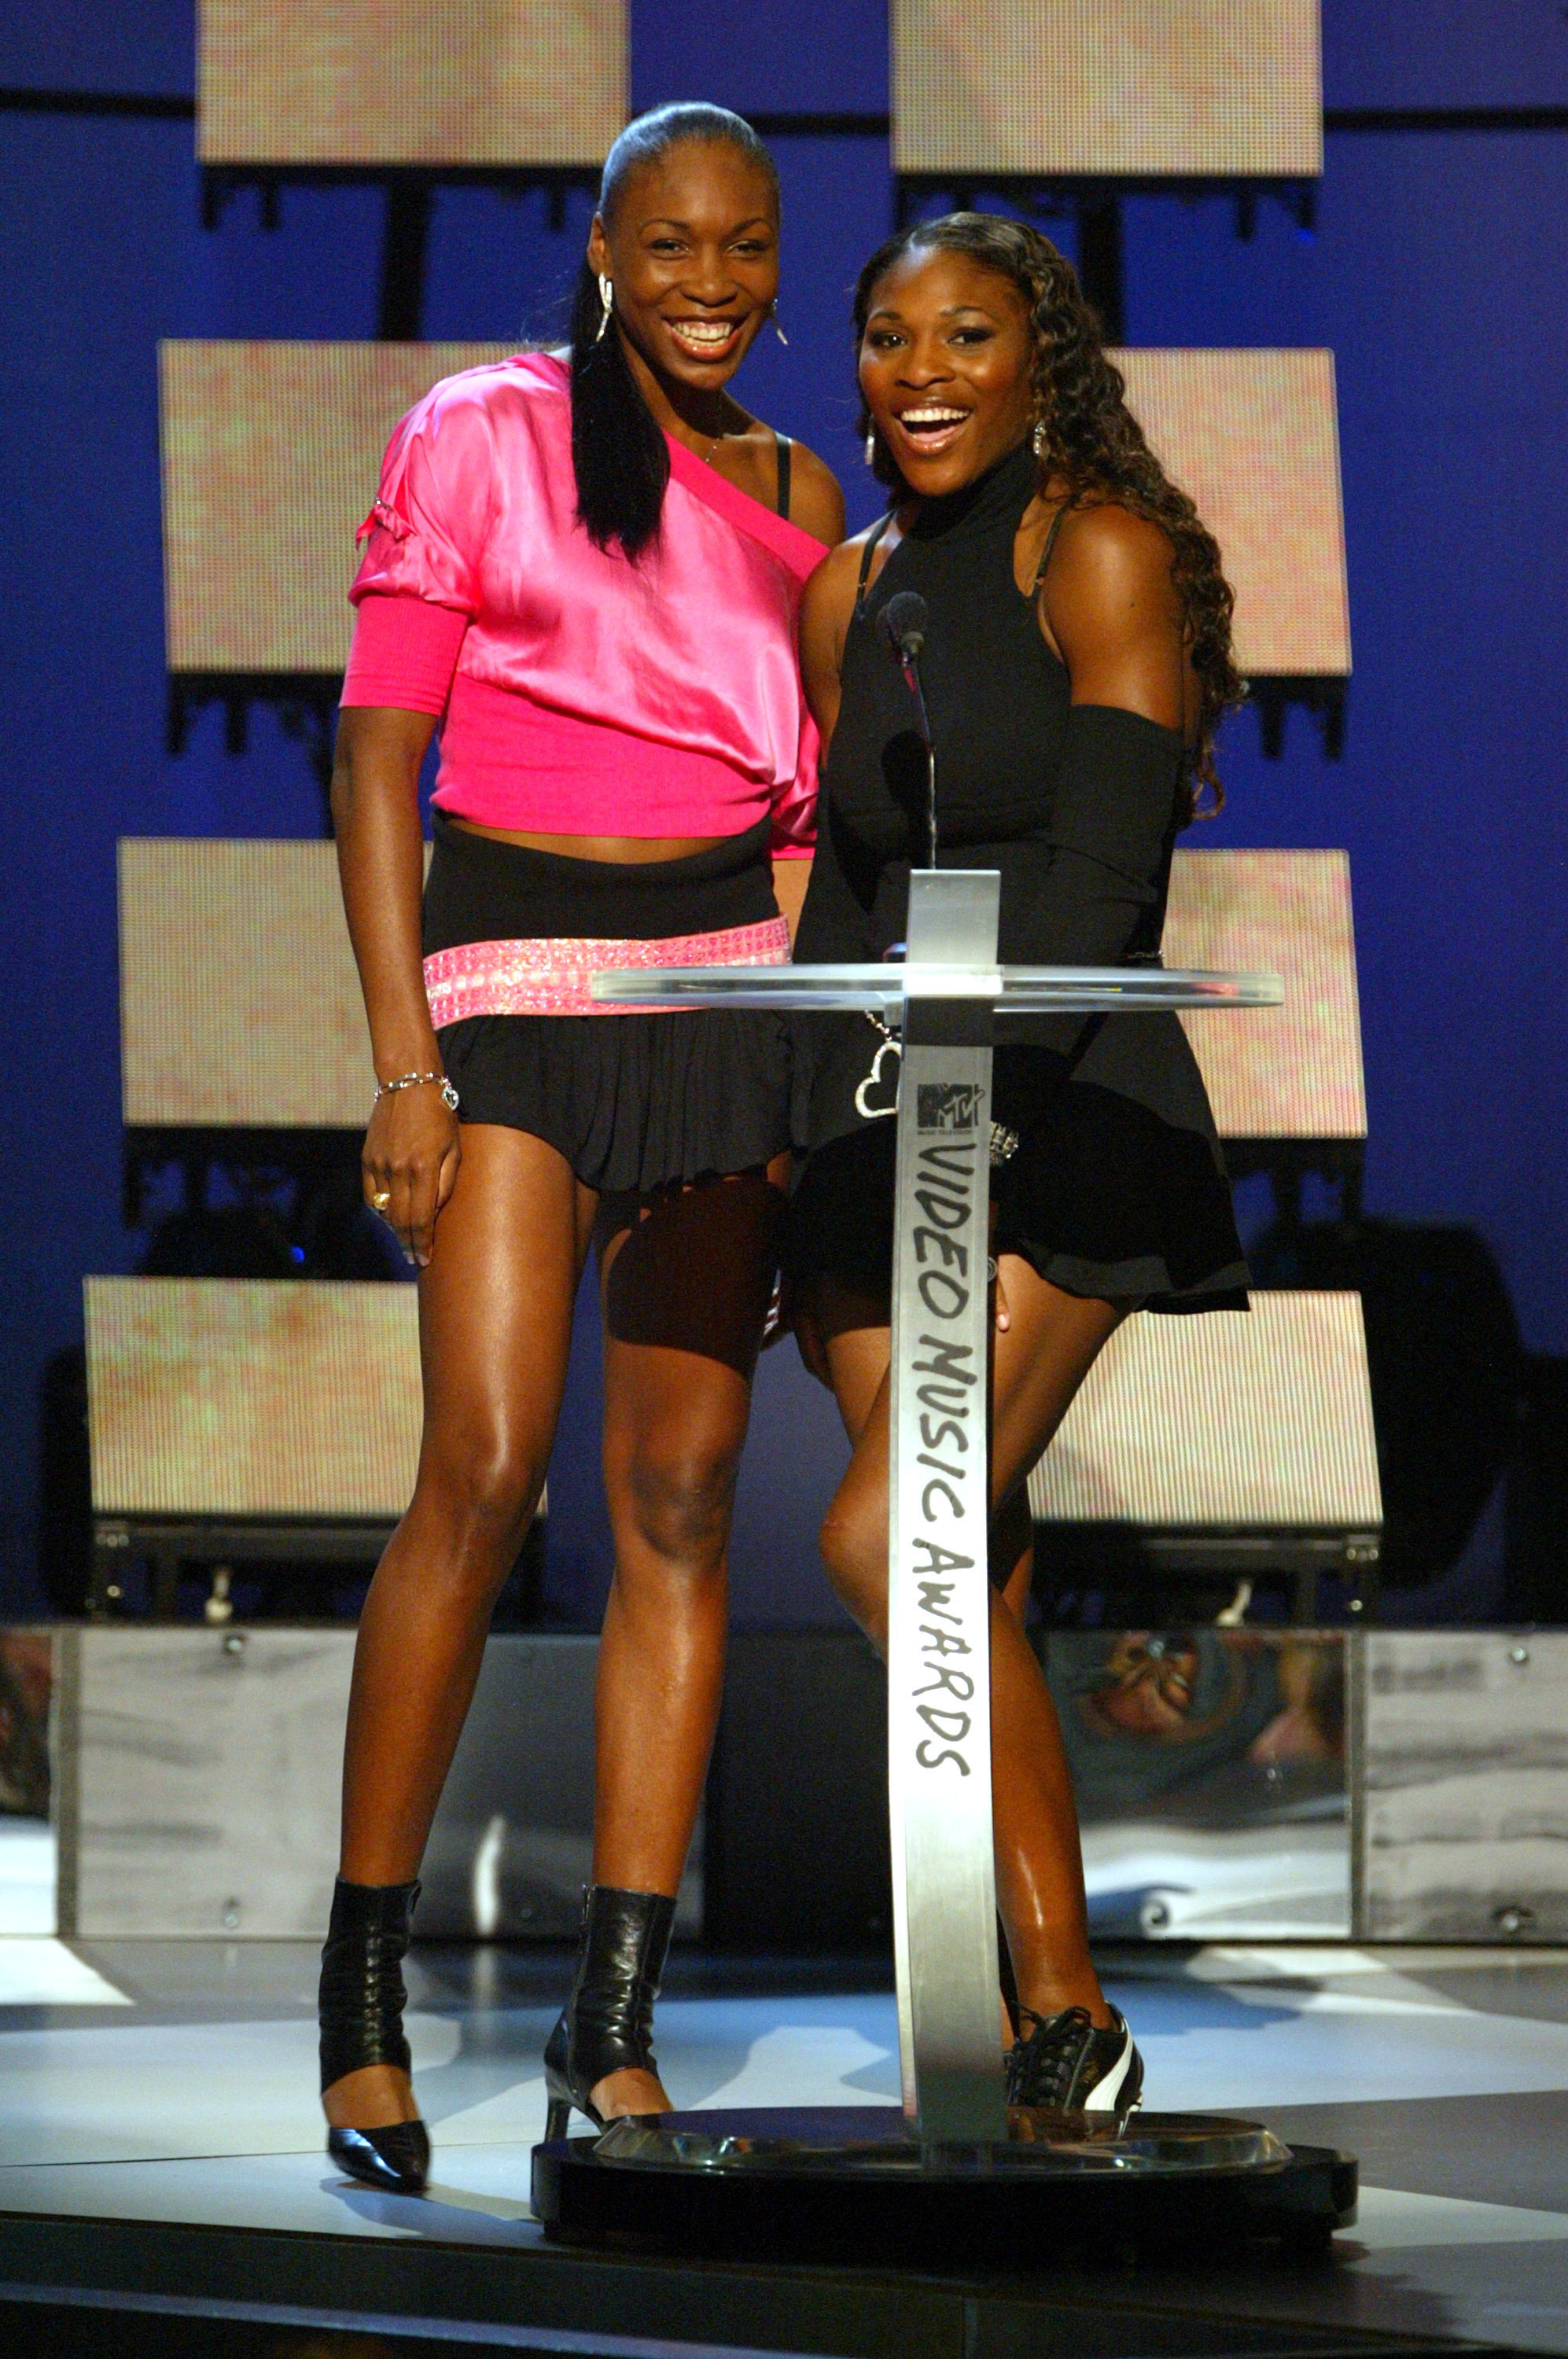 Venus Williams and Serena Williams announce Best Male Video at the 2003 MTV Video Music Awards at the Radio City Music Hall in New York City on Aug. 28, 2003.